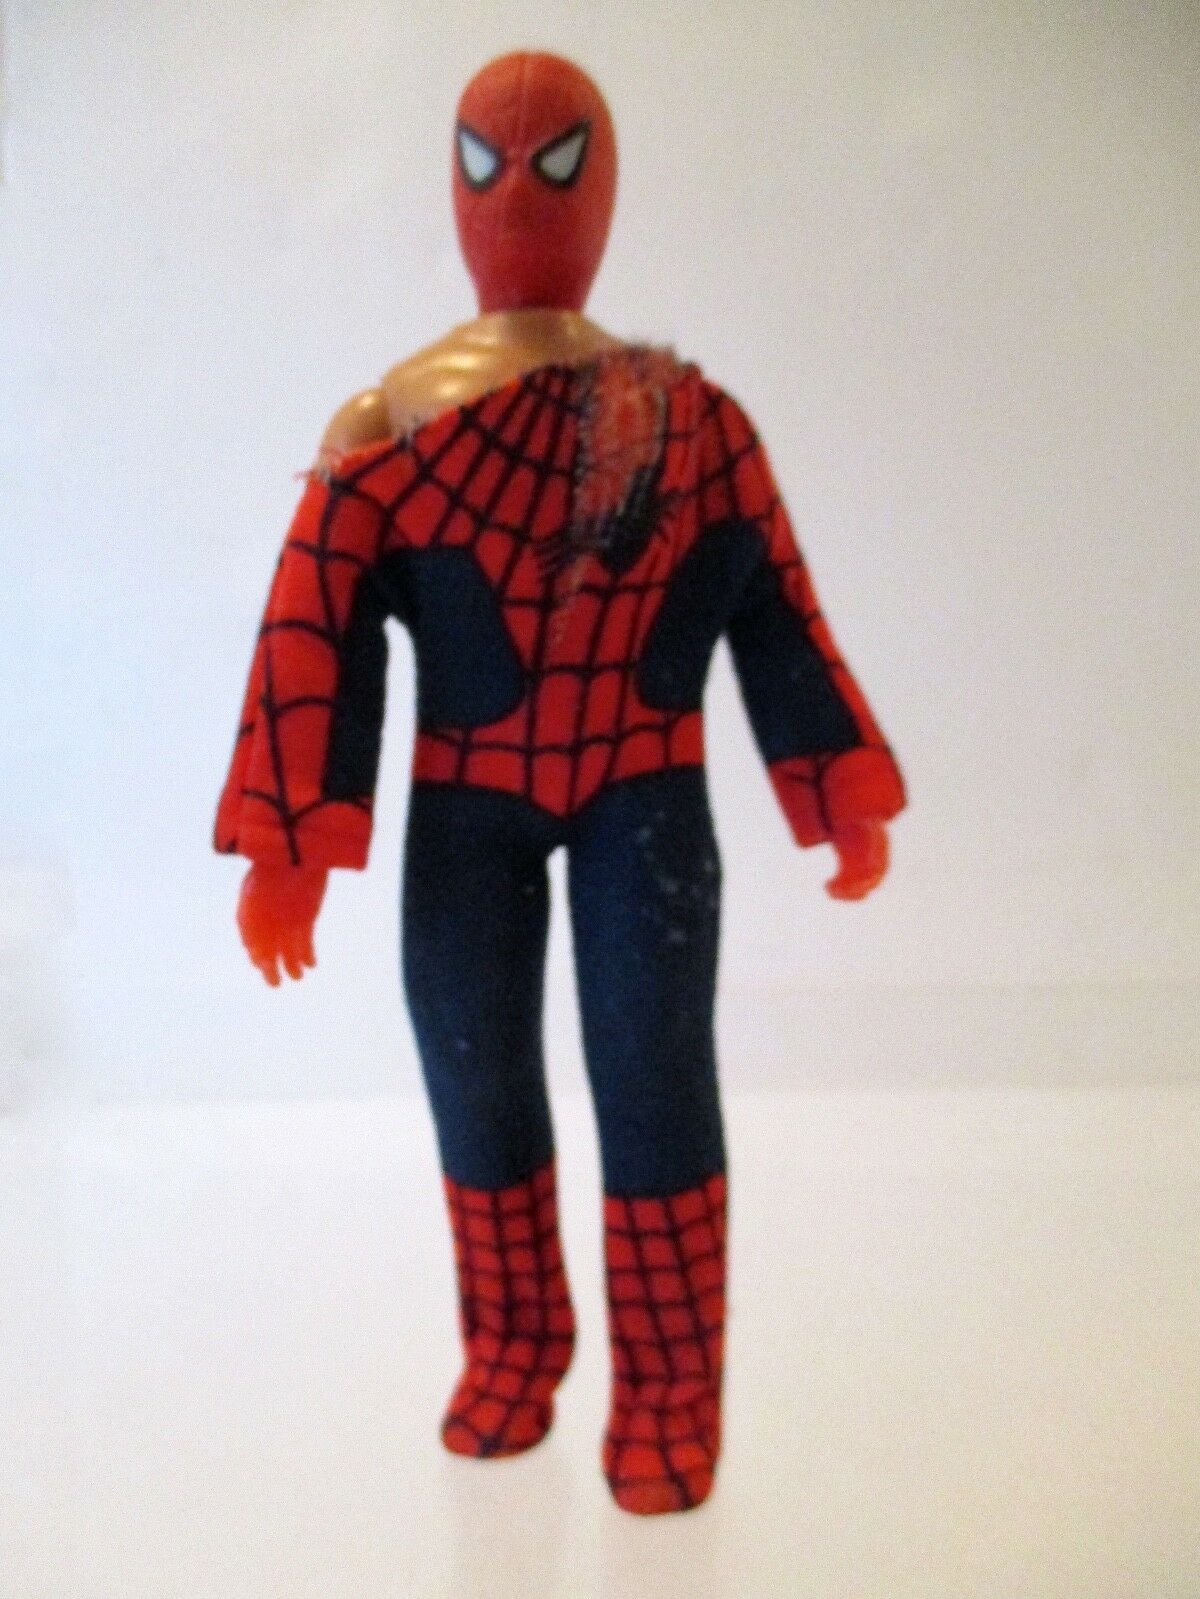 VTG MEGO SPIDER-MAN 8  FIGURE 1970's 1974 THE WORLD'S GREATEST SUPER-HEROS T2